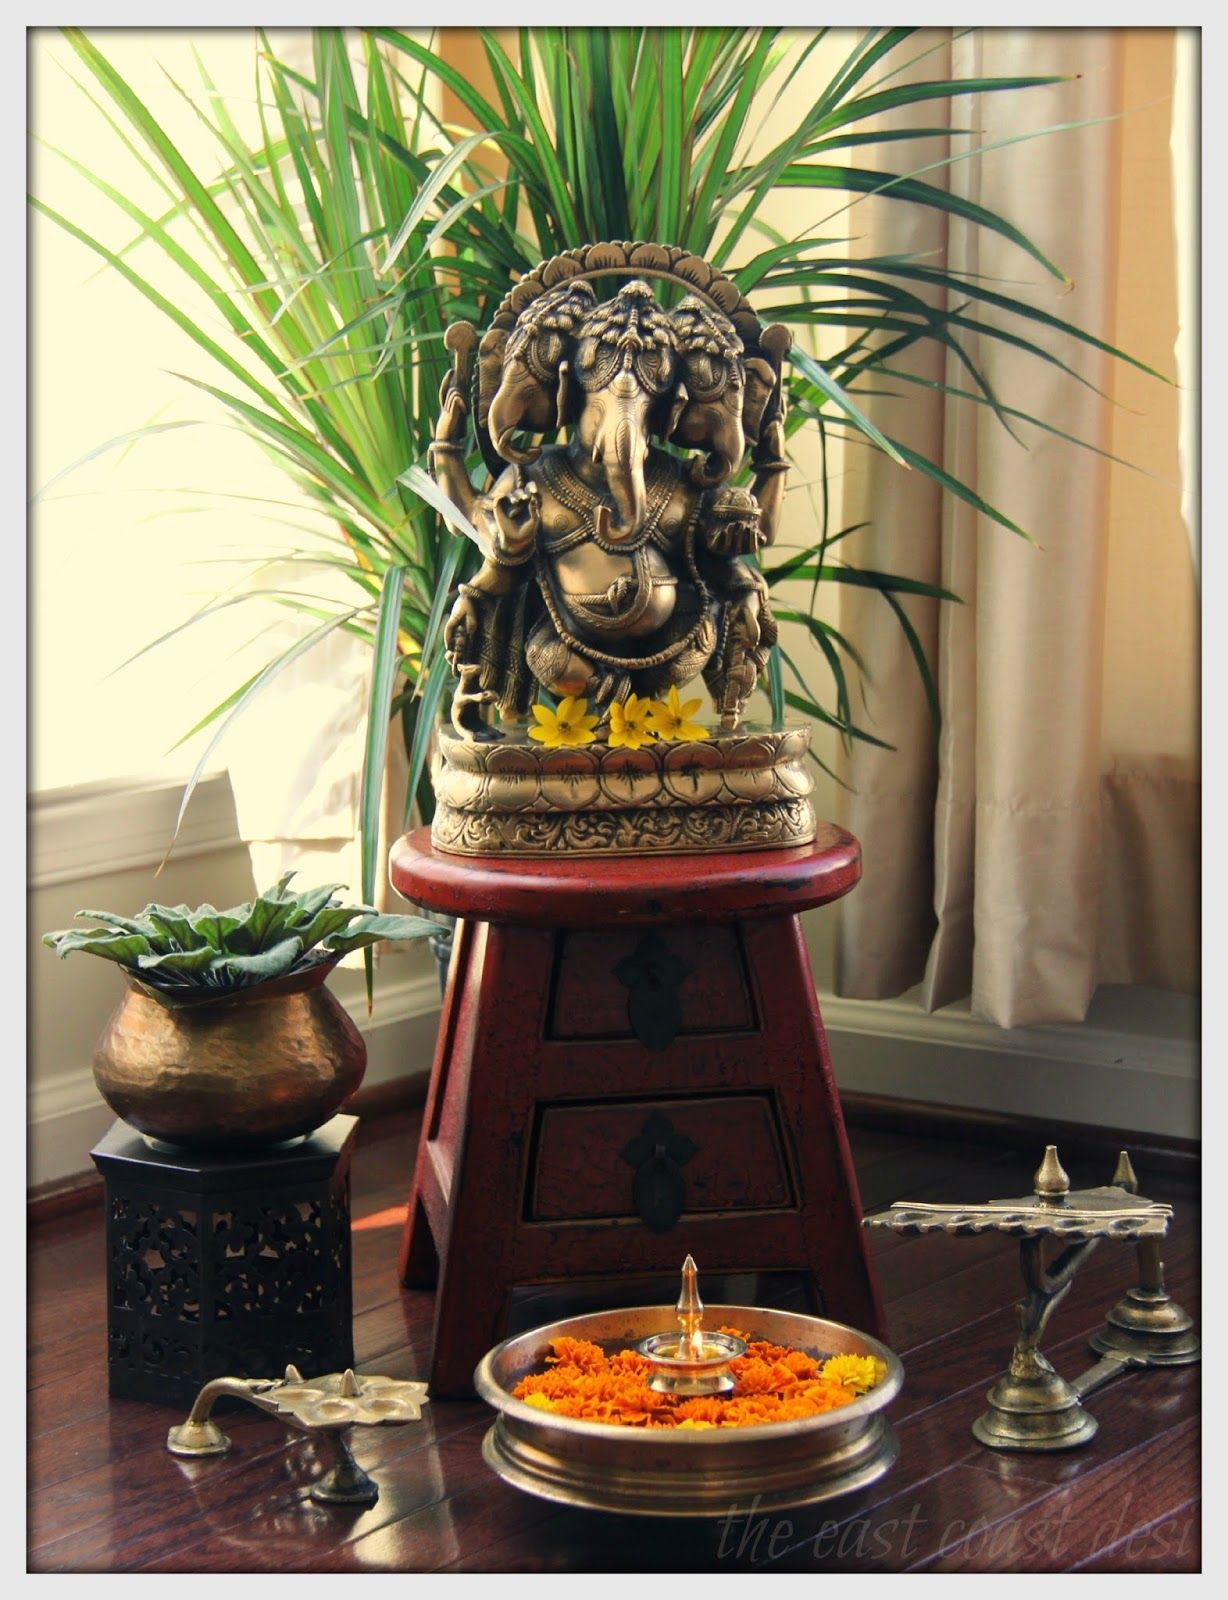 Just in time for some Ganesha Chaturthi Inspiration